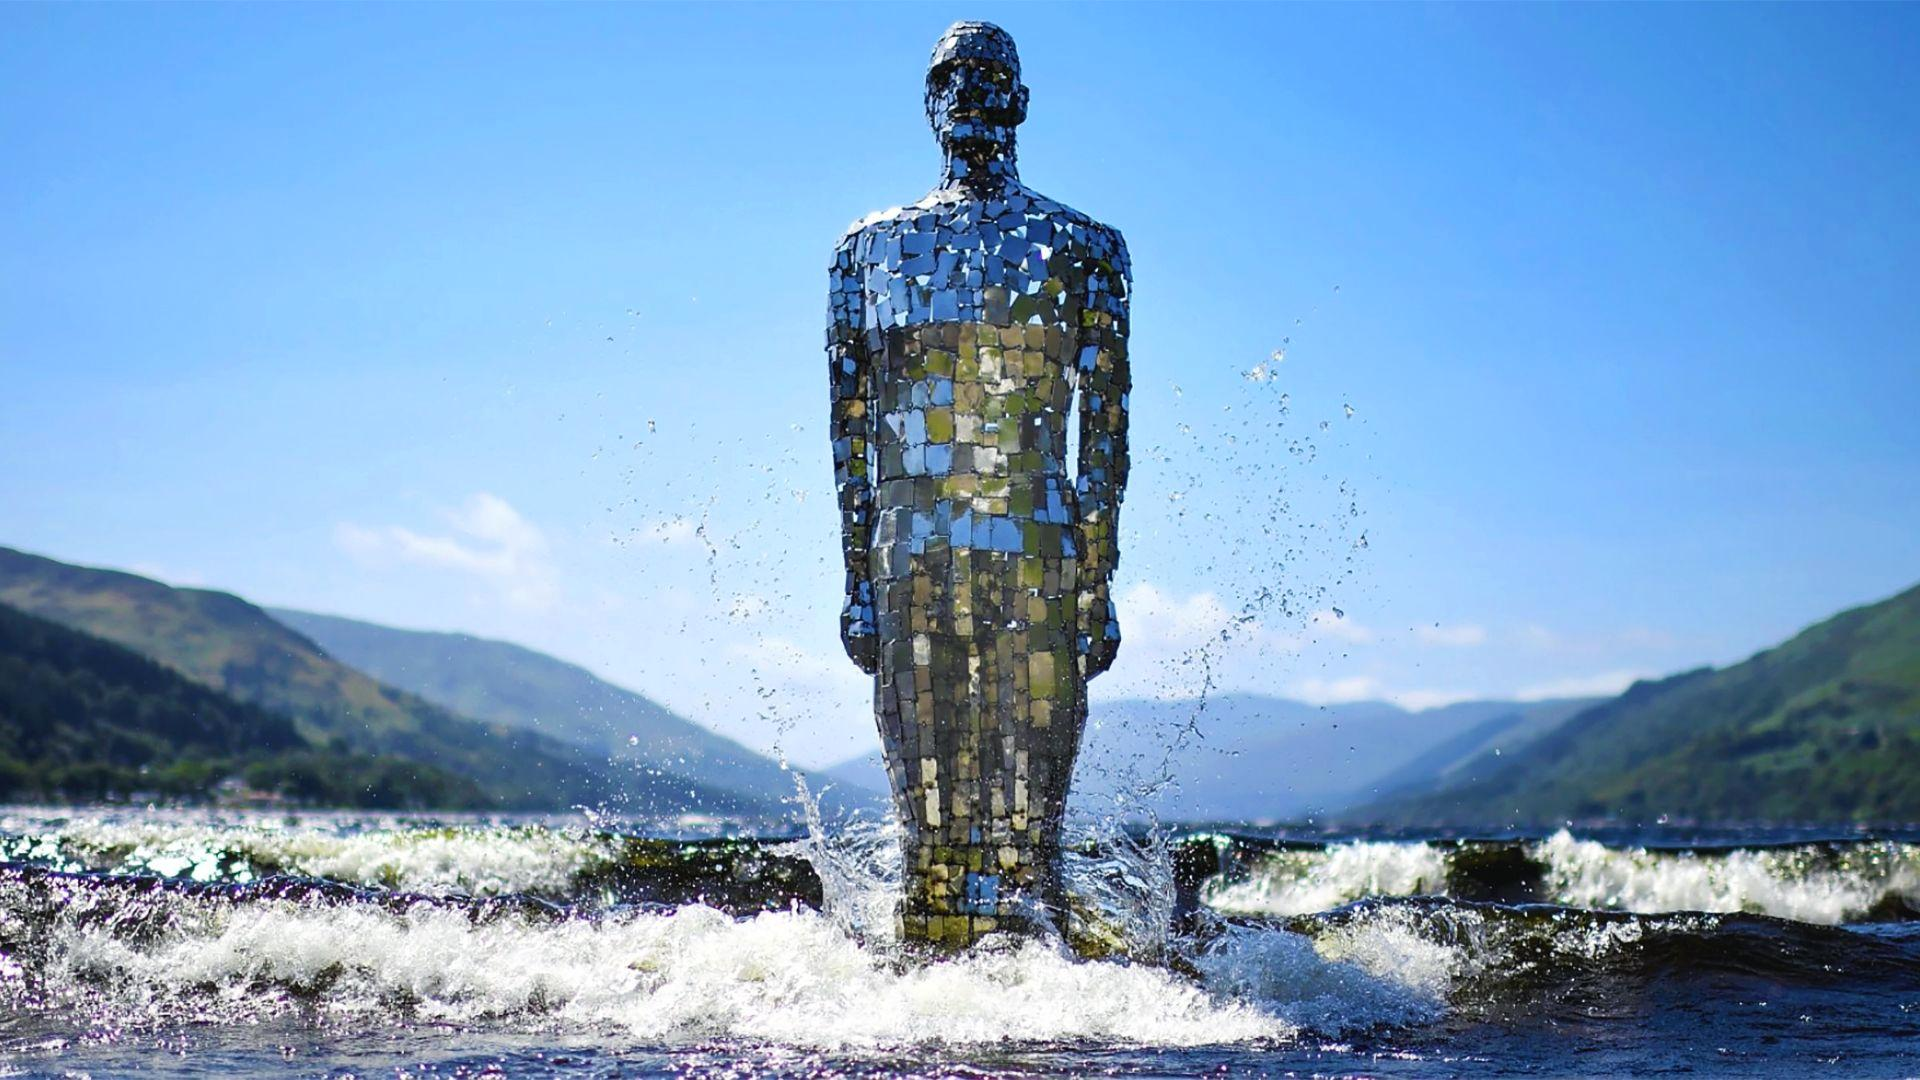 The Story Behind Mirror Man, a 9-Foot-Tall Statue in Scotland